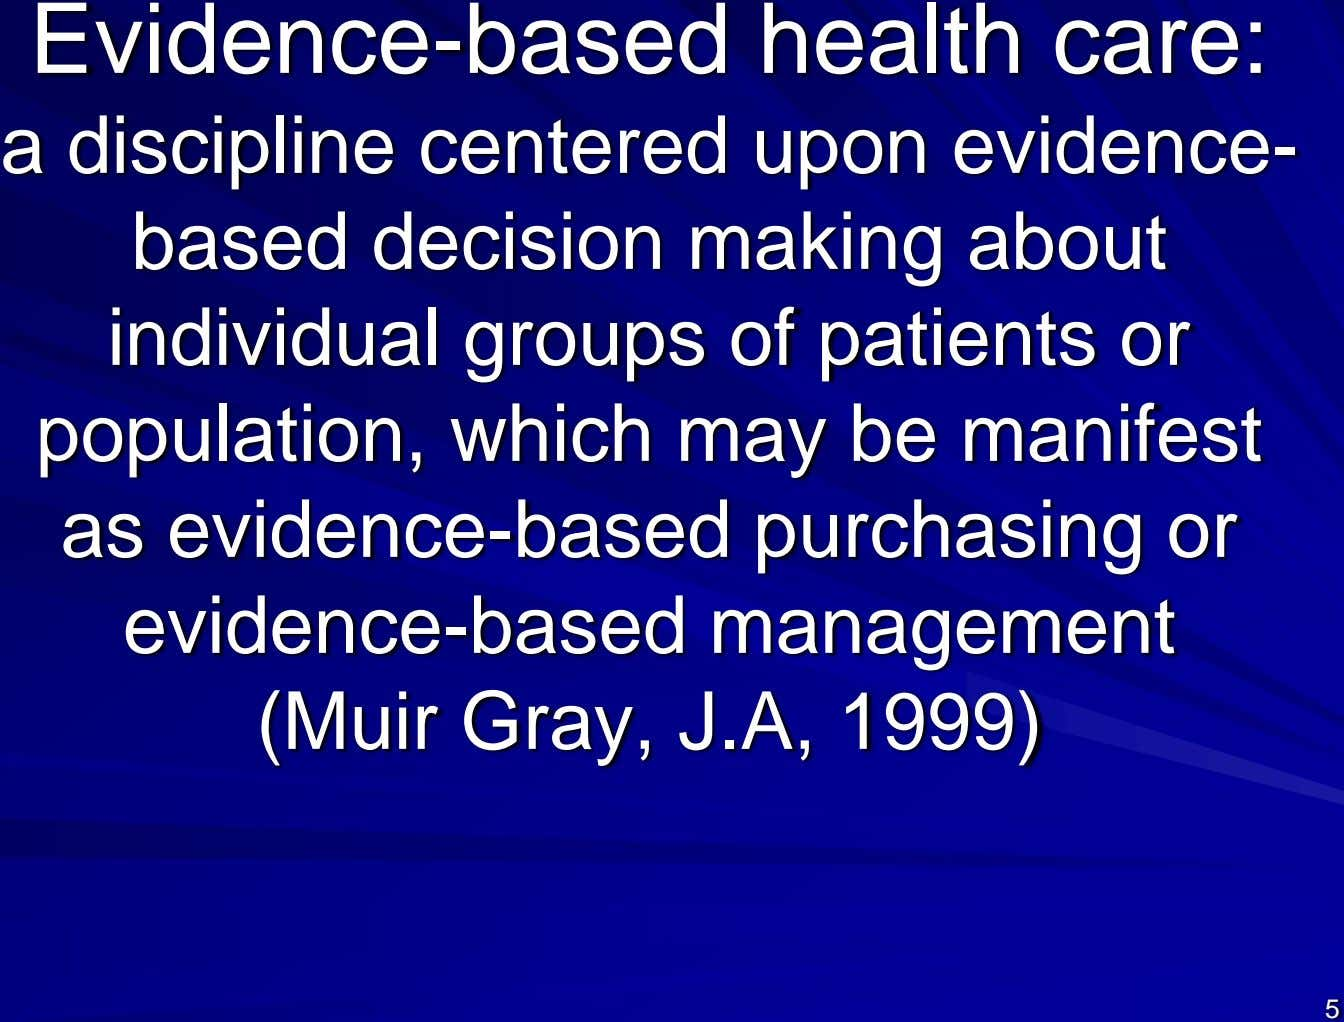 Evidence-based health care: a discipline centered upon evidence- based decision making about individual groups of